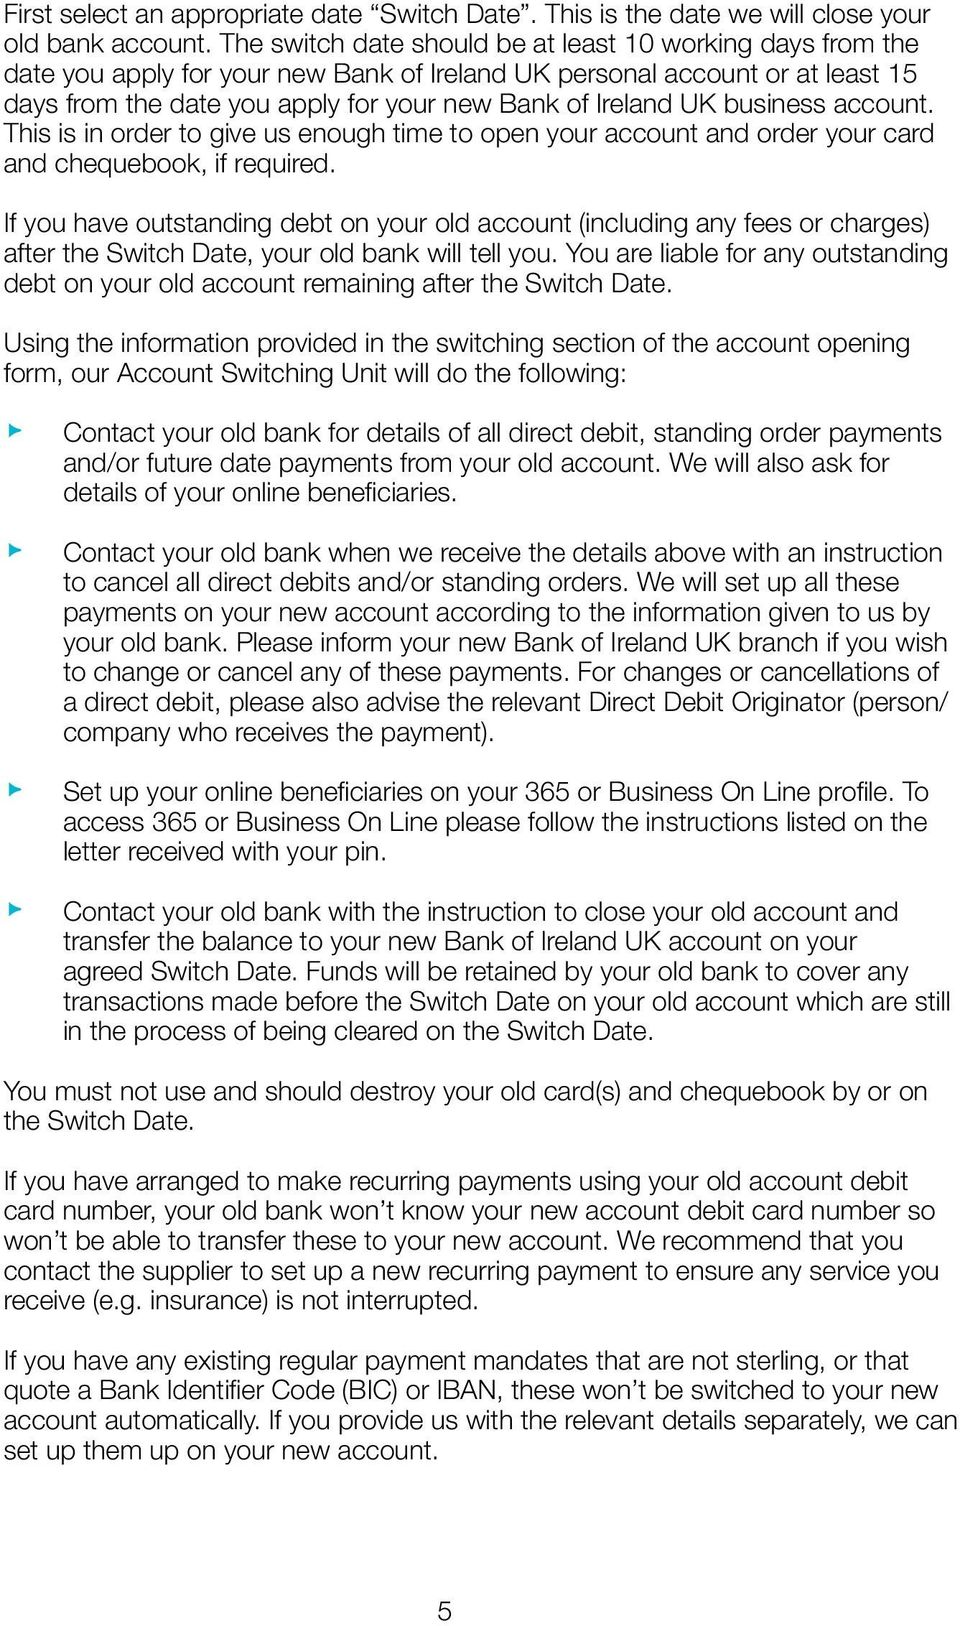 business account. This is in order to give us enough time to open your account and order your card and chequebook, if required.